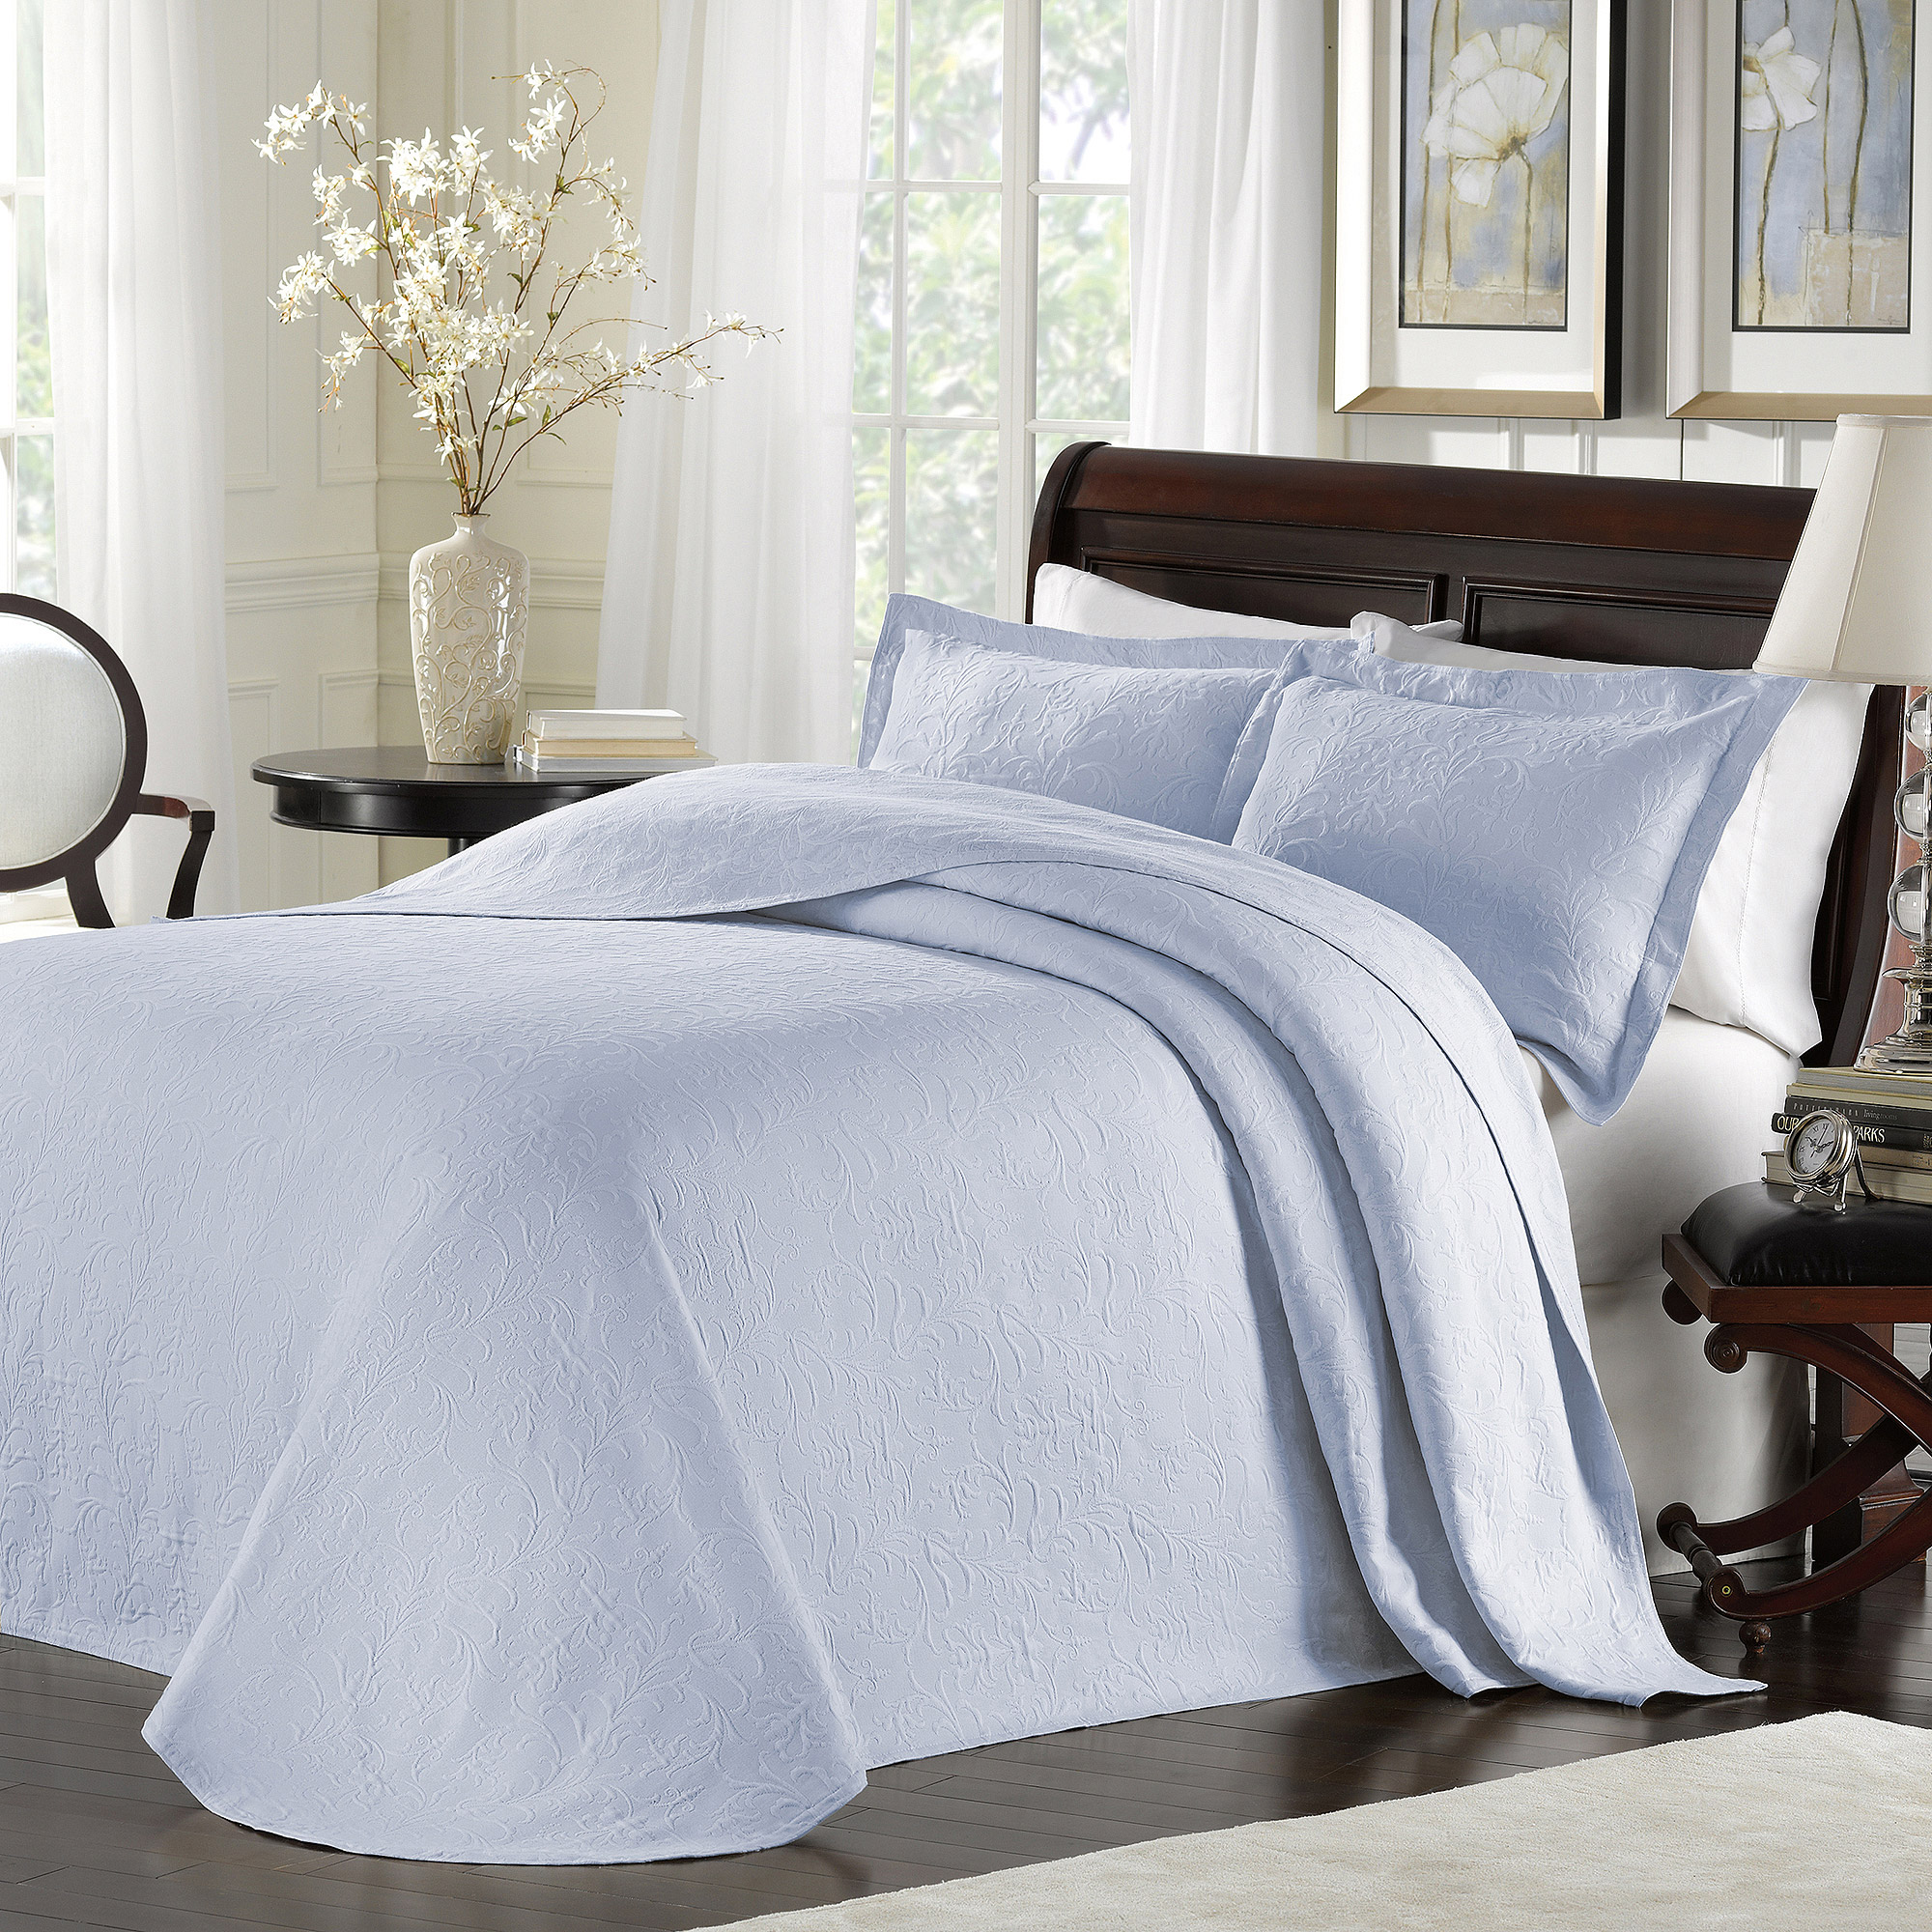 LaMont Home Majestic Collection – 100% Cotton Matelassé Bedspread